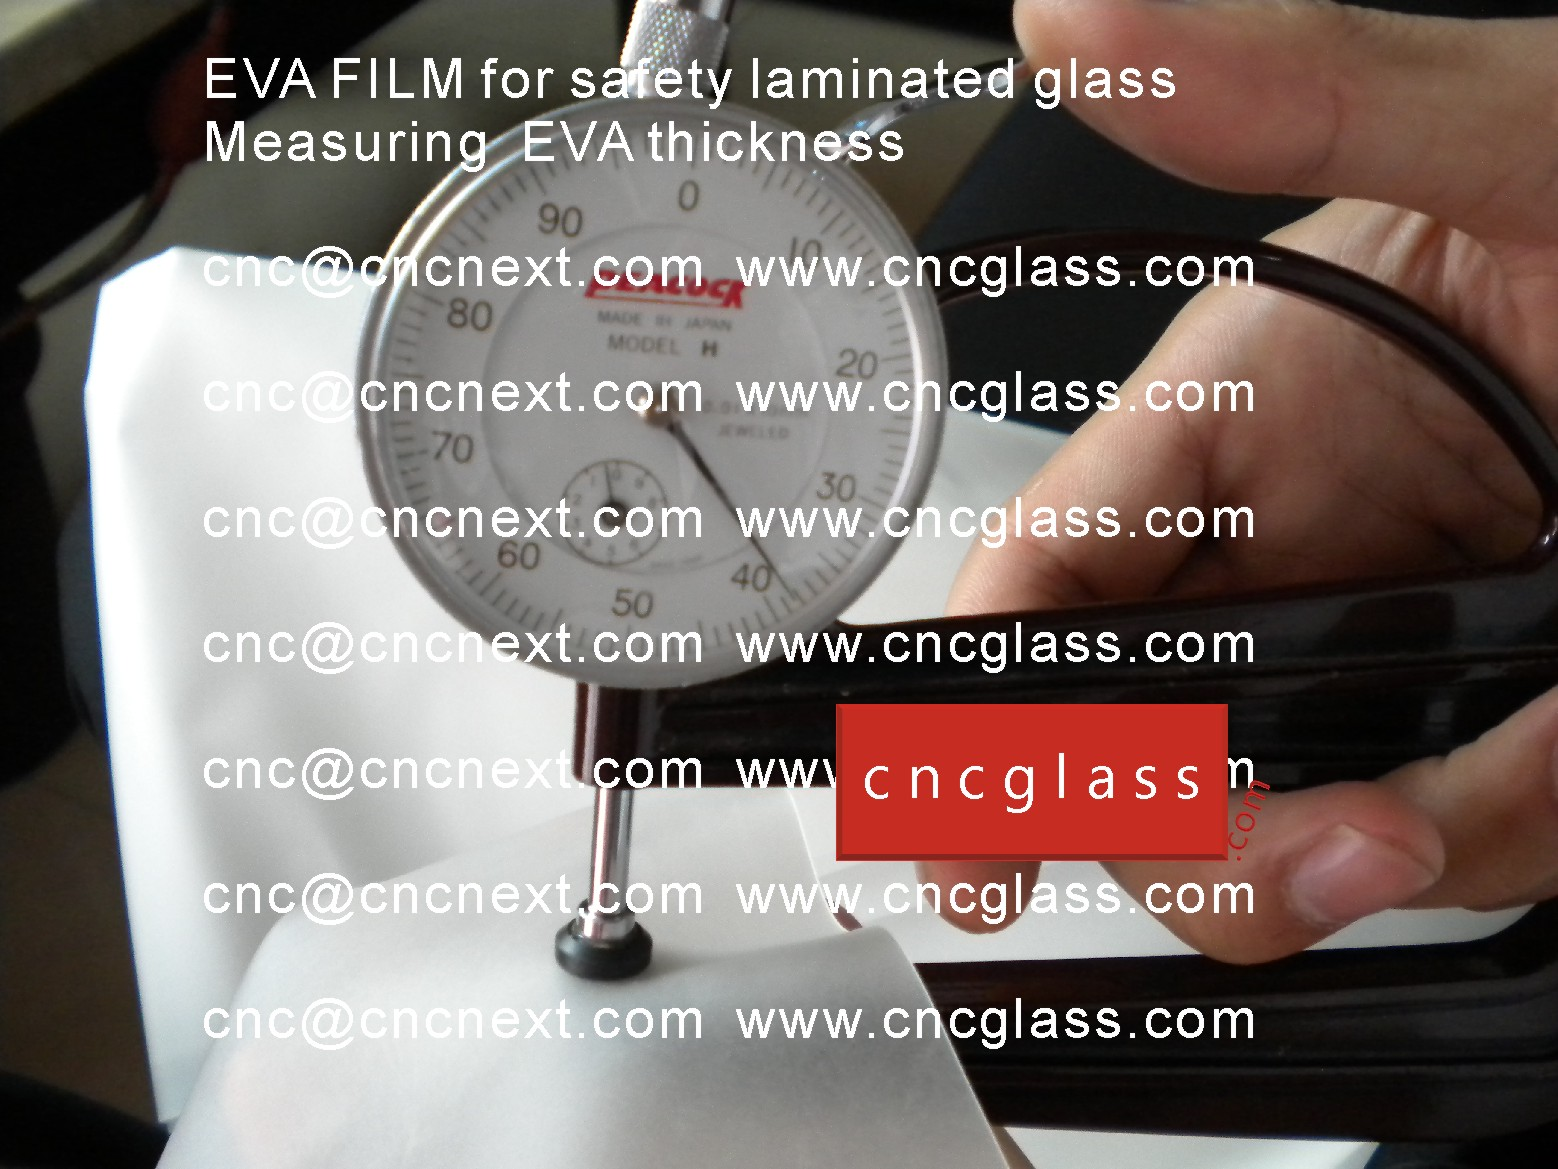 009 EVAFORCE EVA FILM FOR SAFETY LAMINATED GLASS